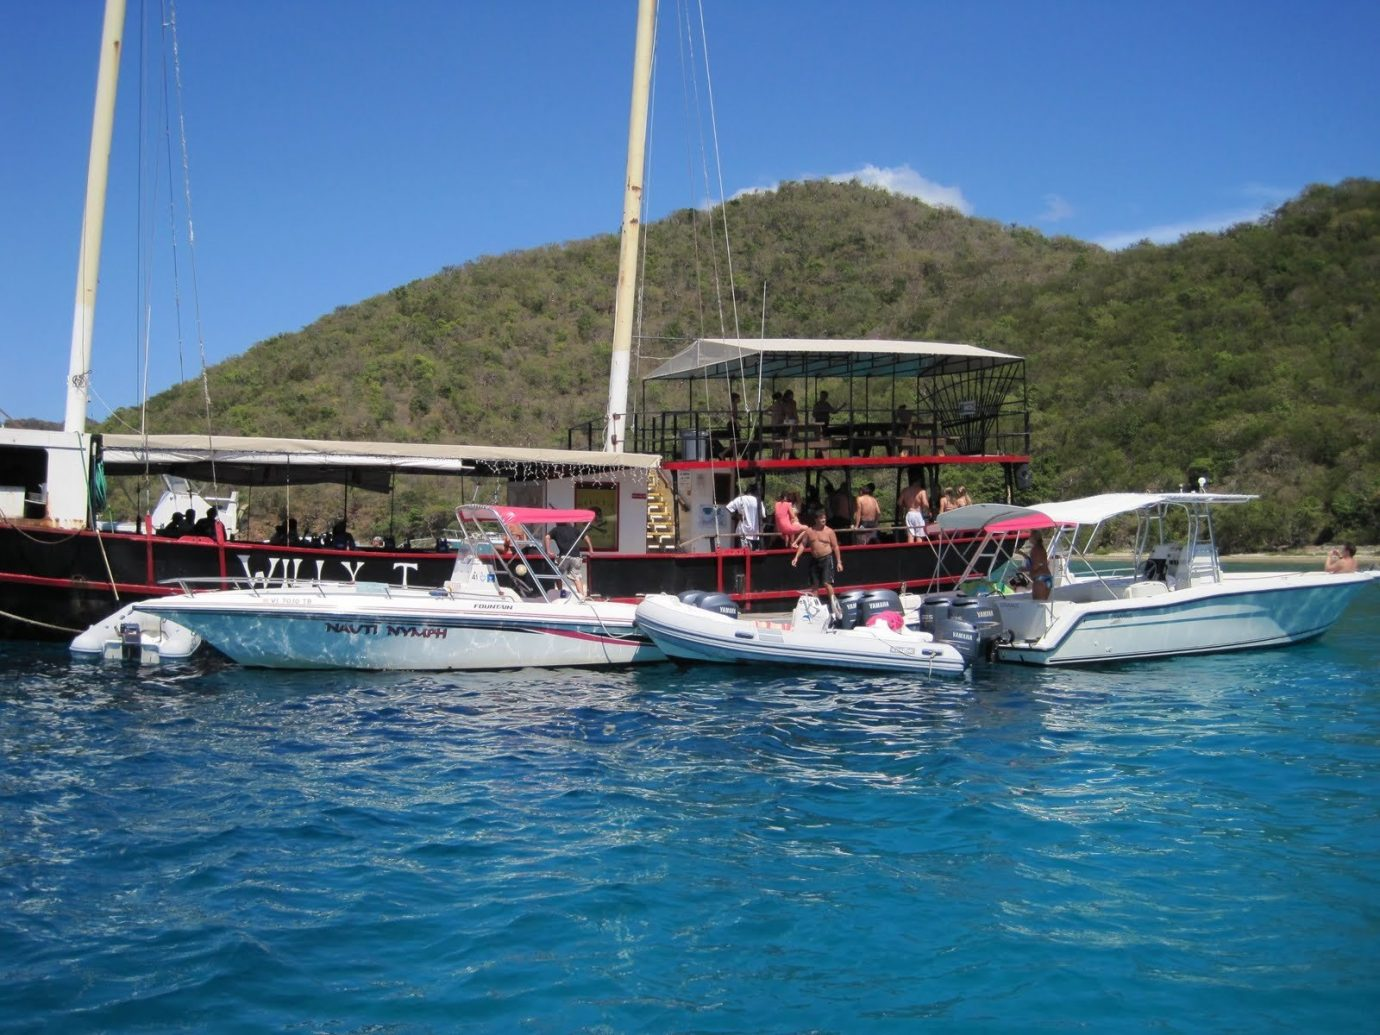 Trip Ideas water Boat sky outdoor water transportation mountain sailboat Sea boating marina watercraft yacht bay Ocean vacation sailing sailing vessel traveling